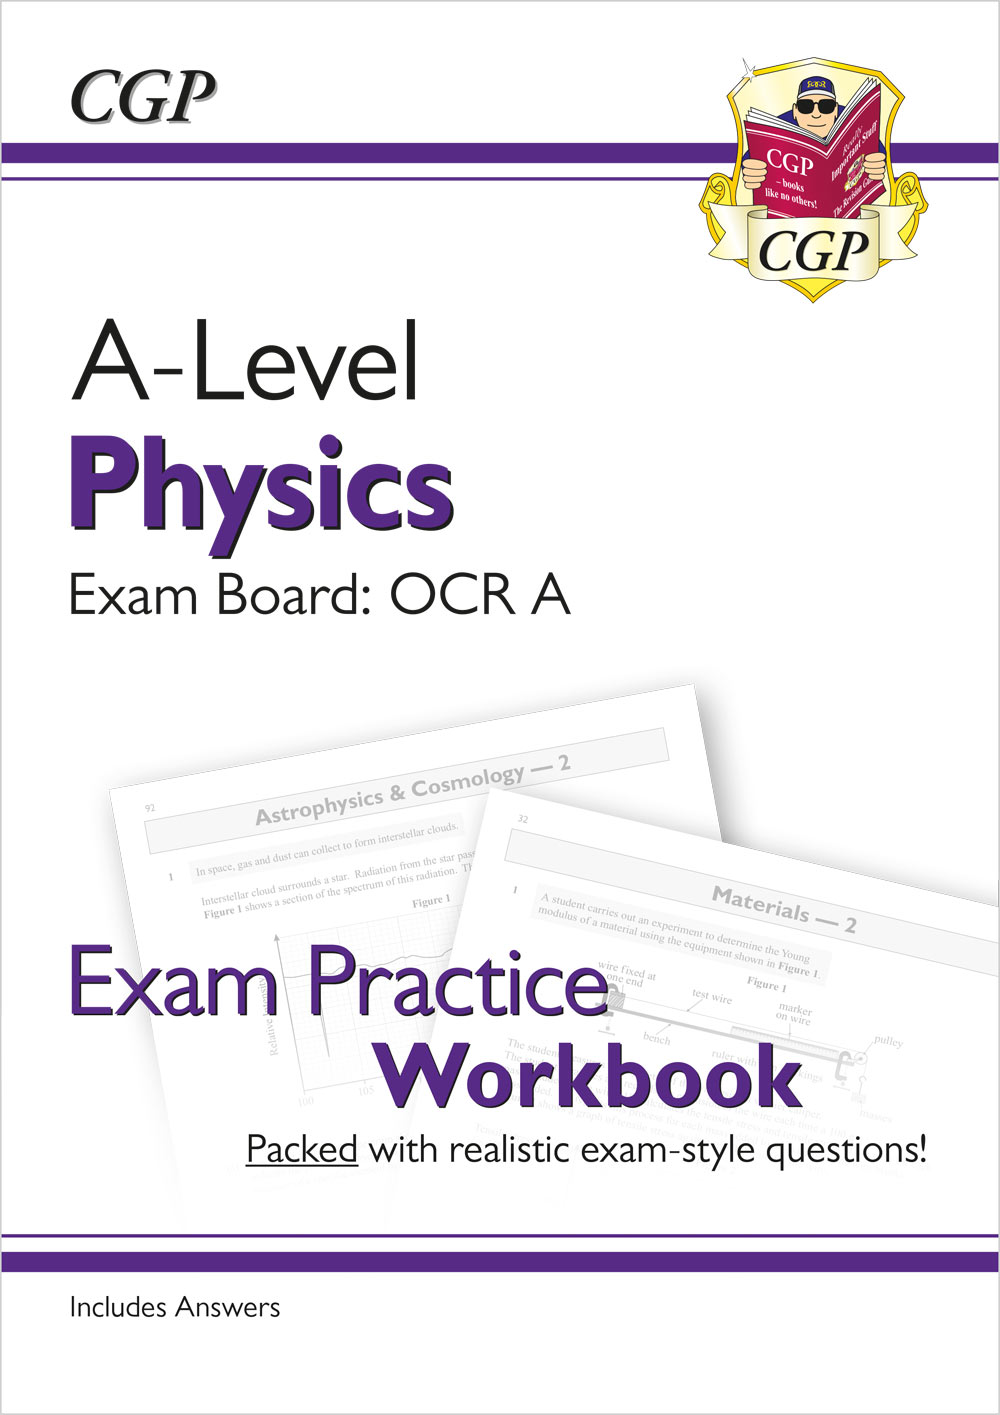 PRAQ71 - New A-Level Physics: OCR A Year 1 & 2 Exam Practice Workbook - includes Answers